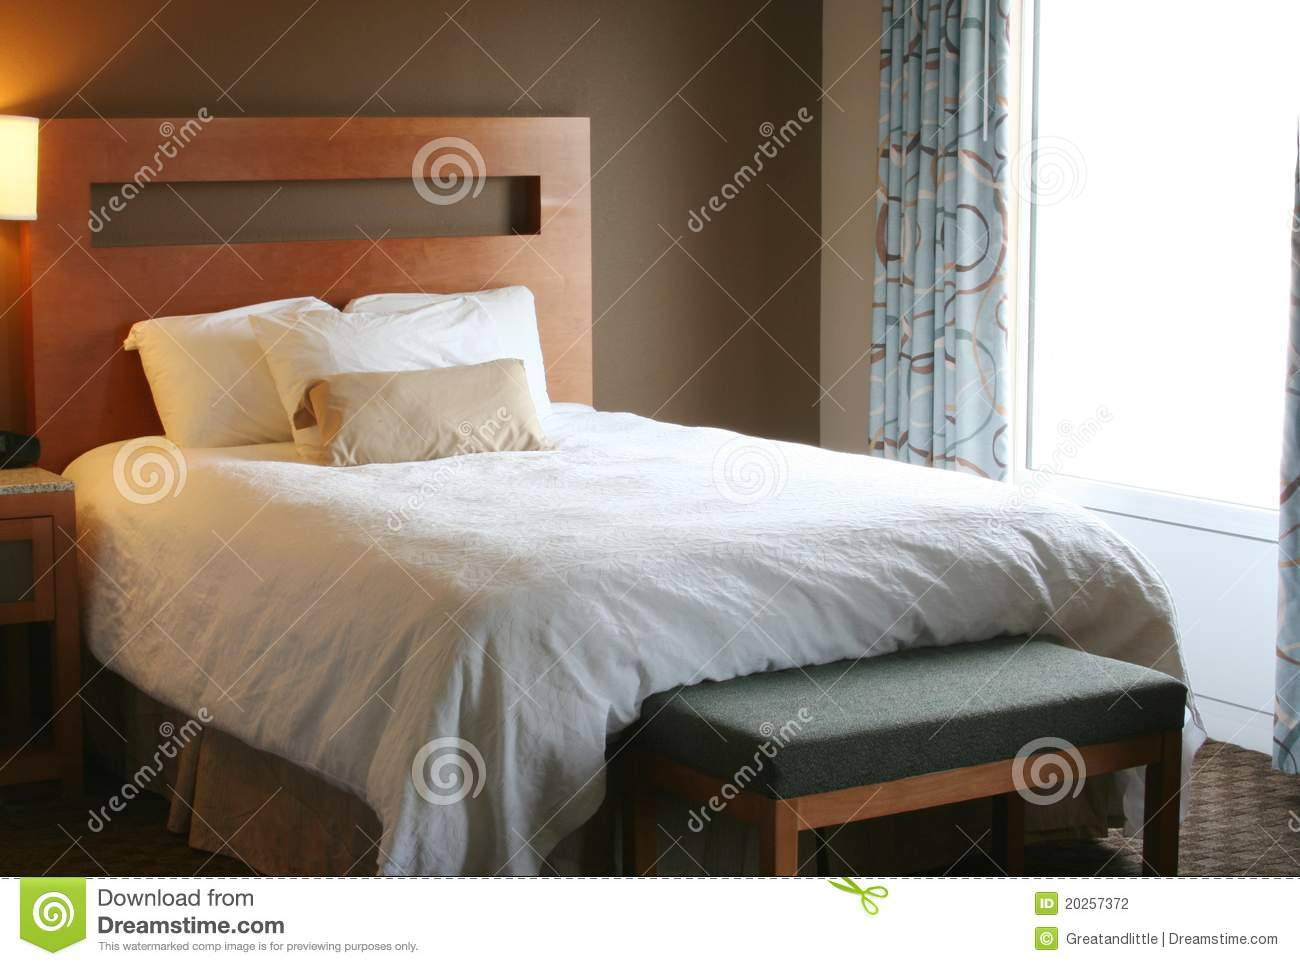 Bedroom With White Blanket On Bed Stock Photography